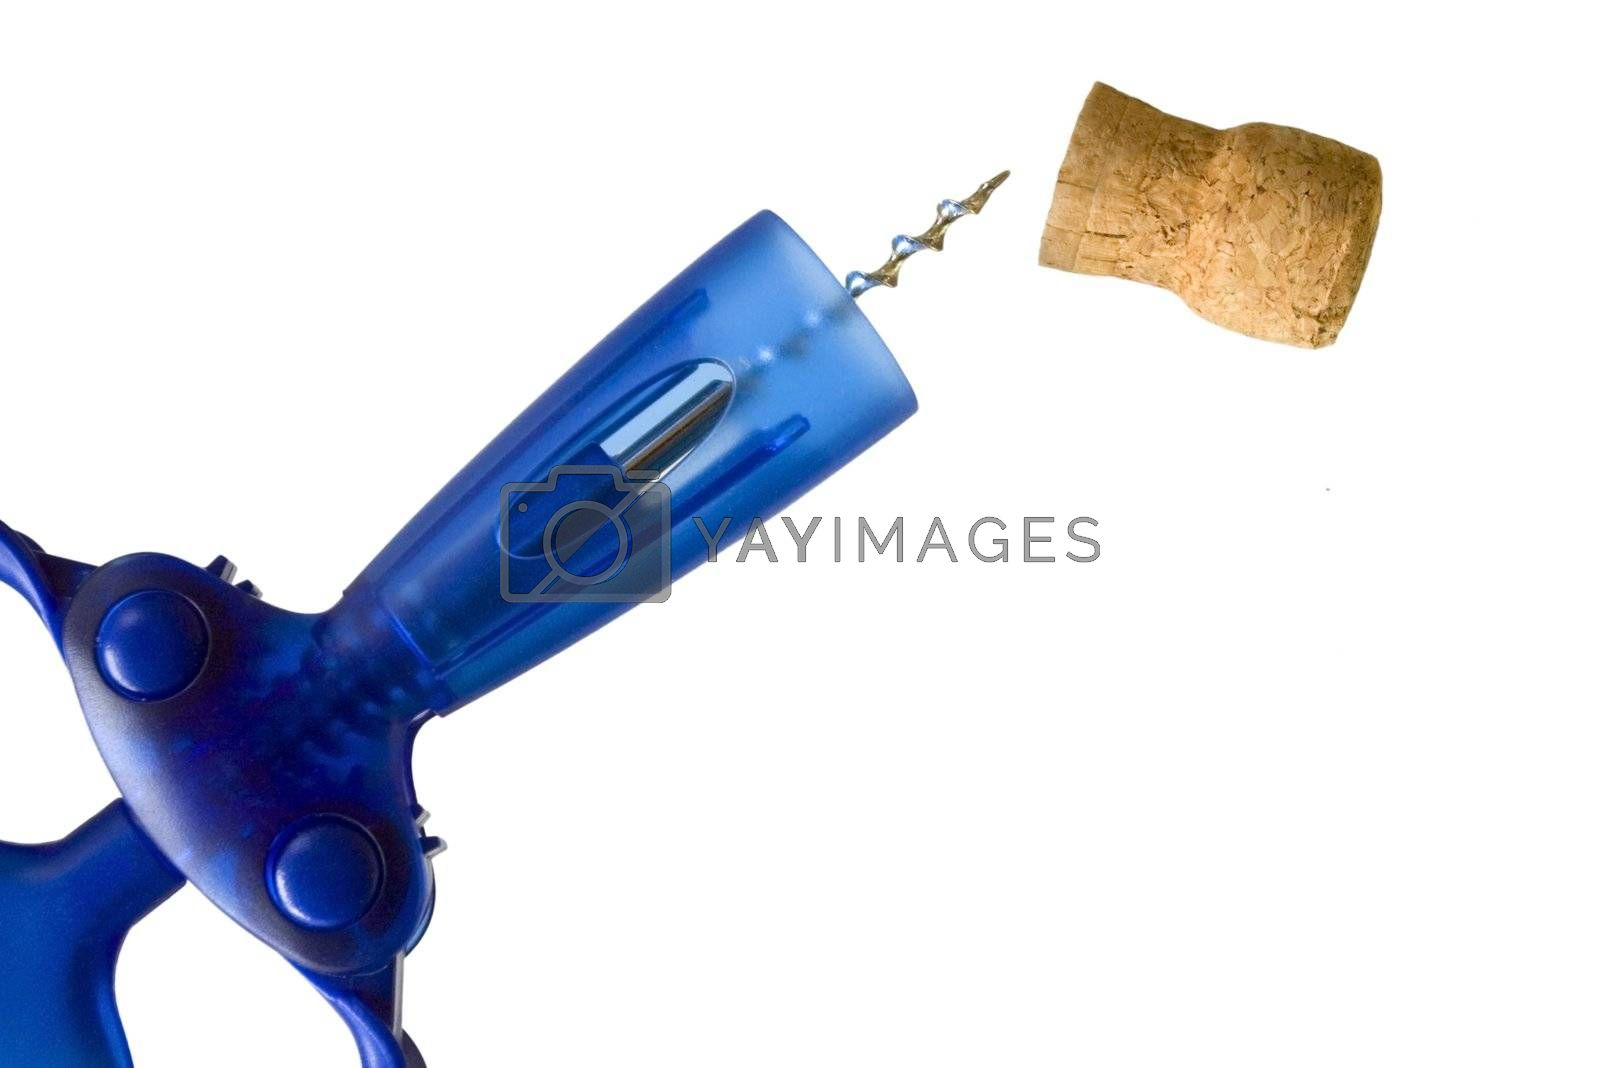 Vivid blue corkscrew and cork isolated against white background